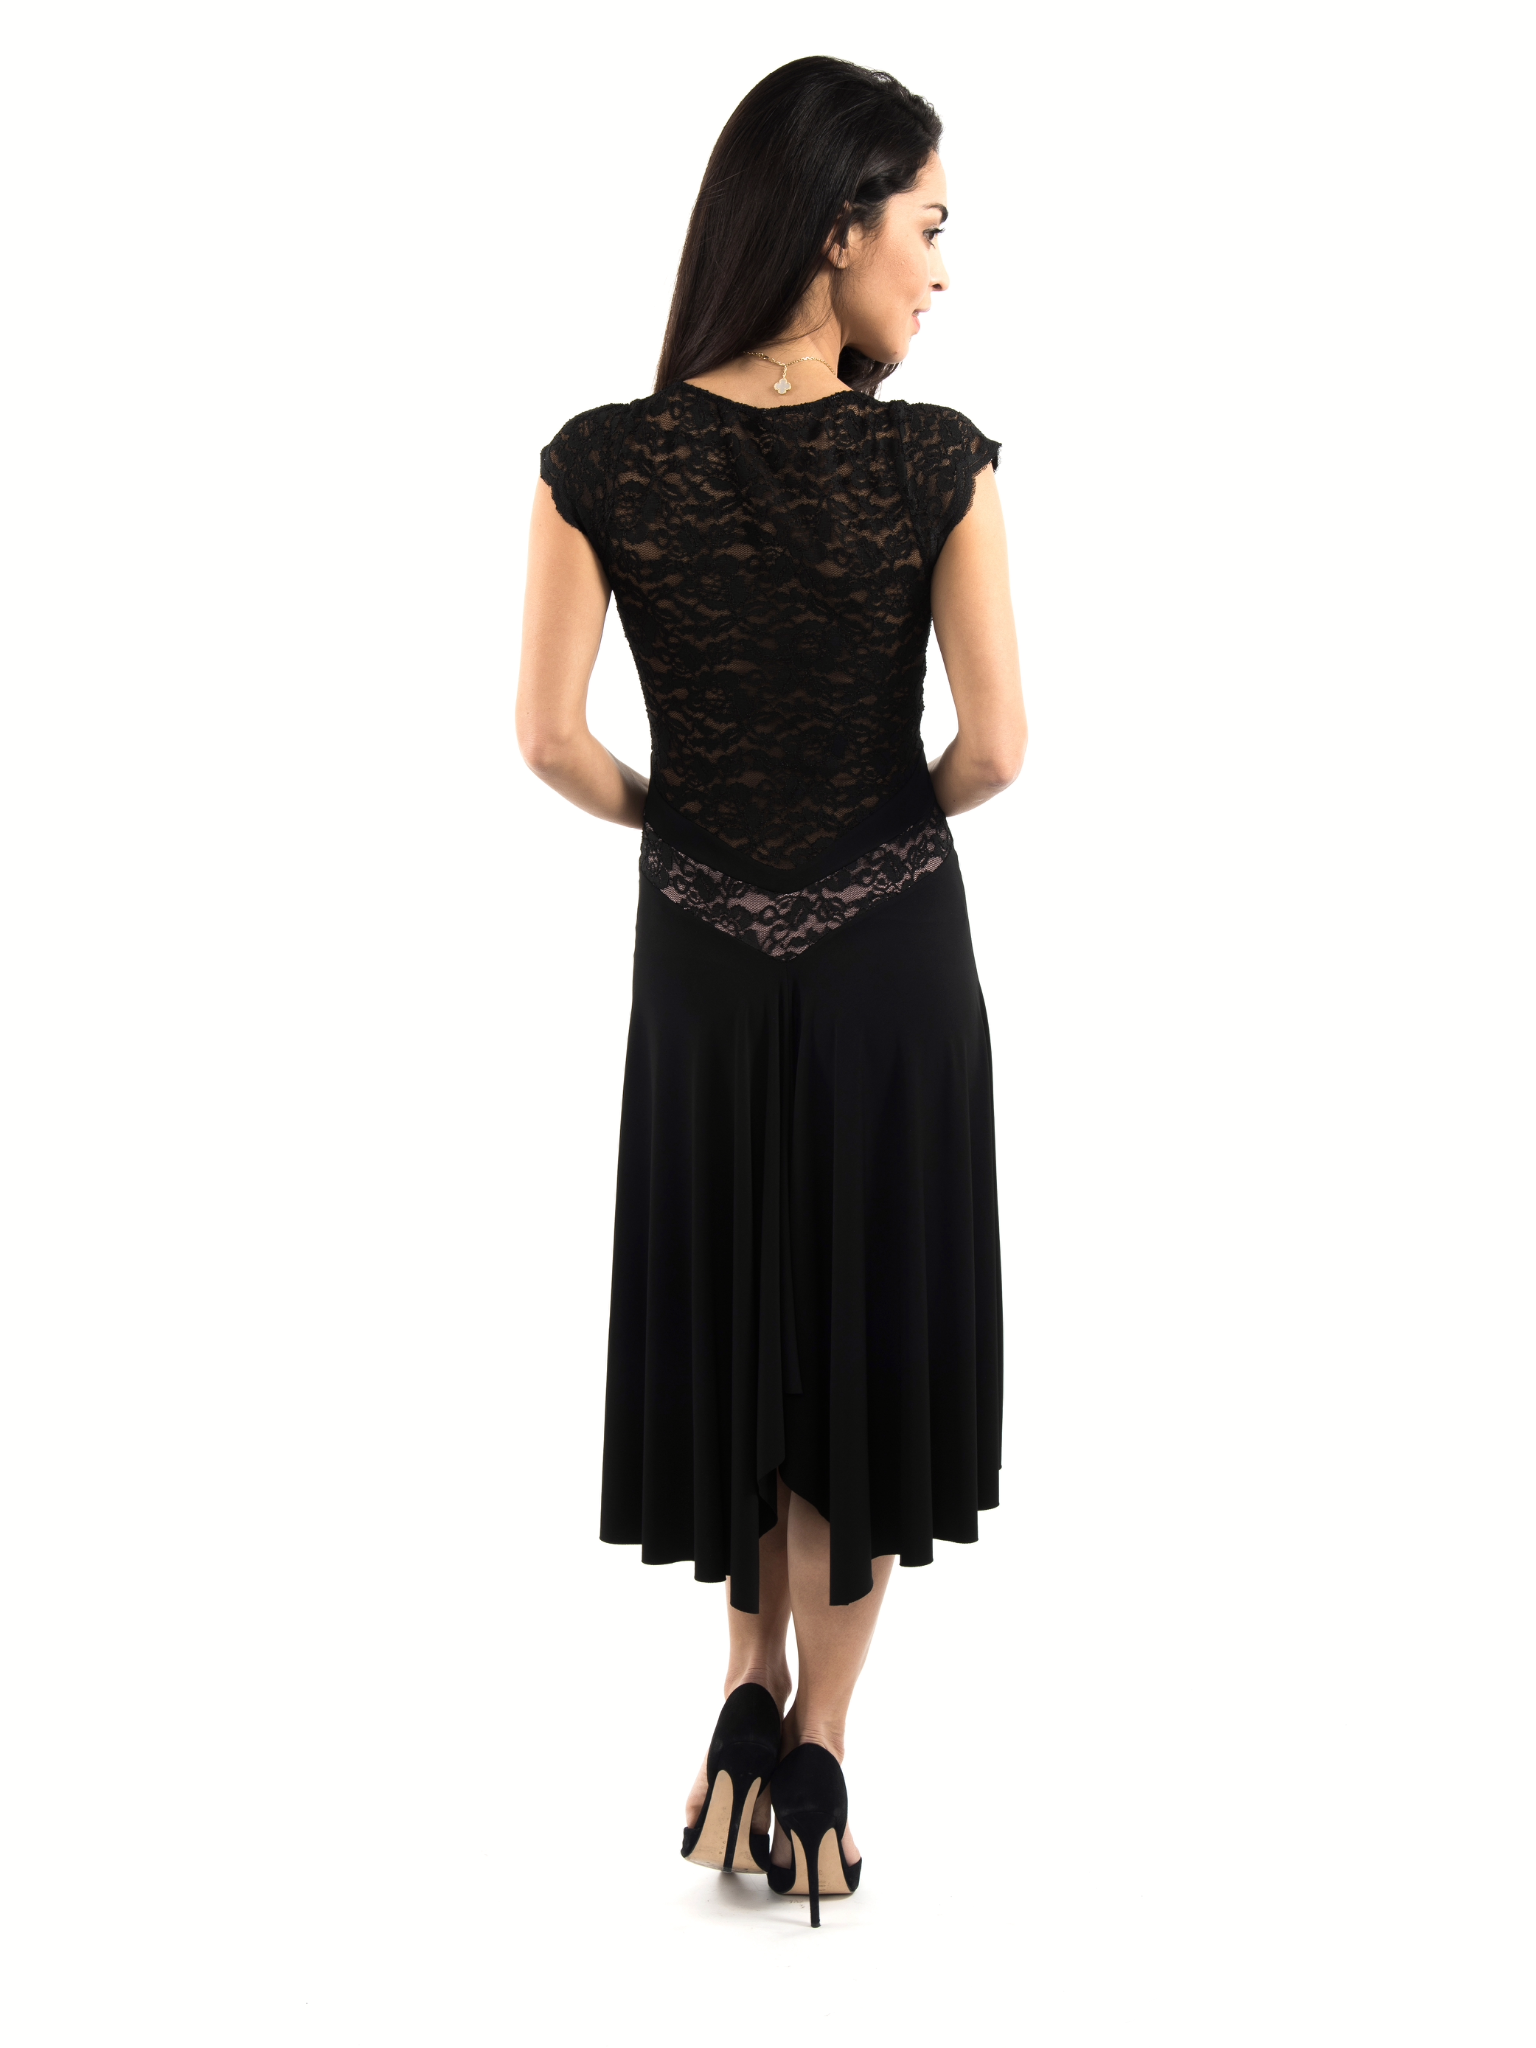 Tango Clothing Dresses Fashion Made In The Uk: The London Tango Boutique